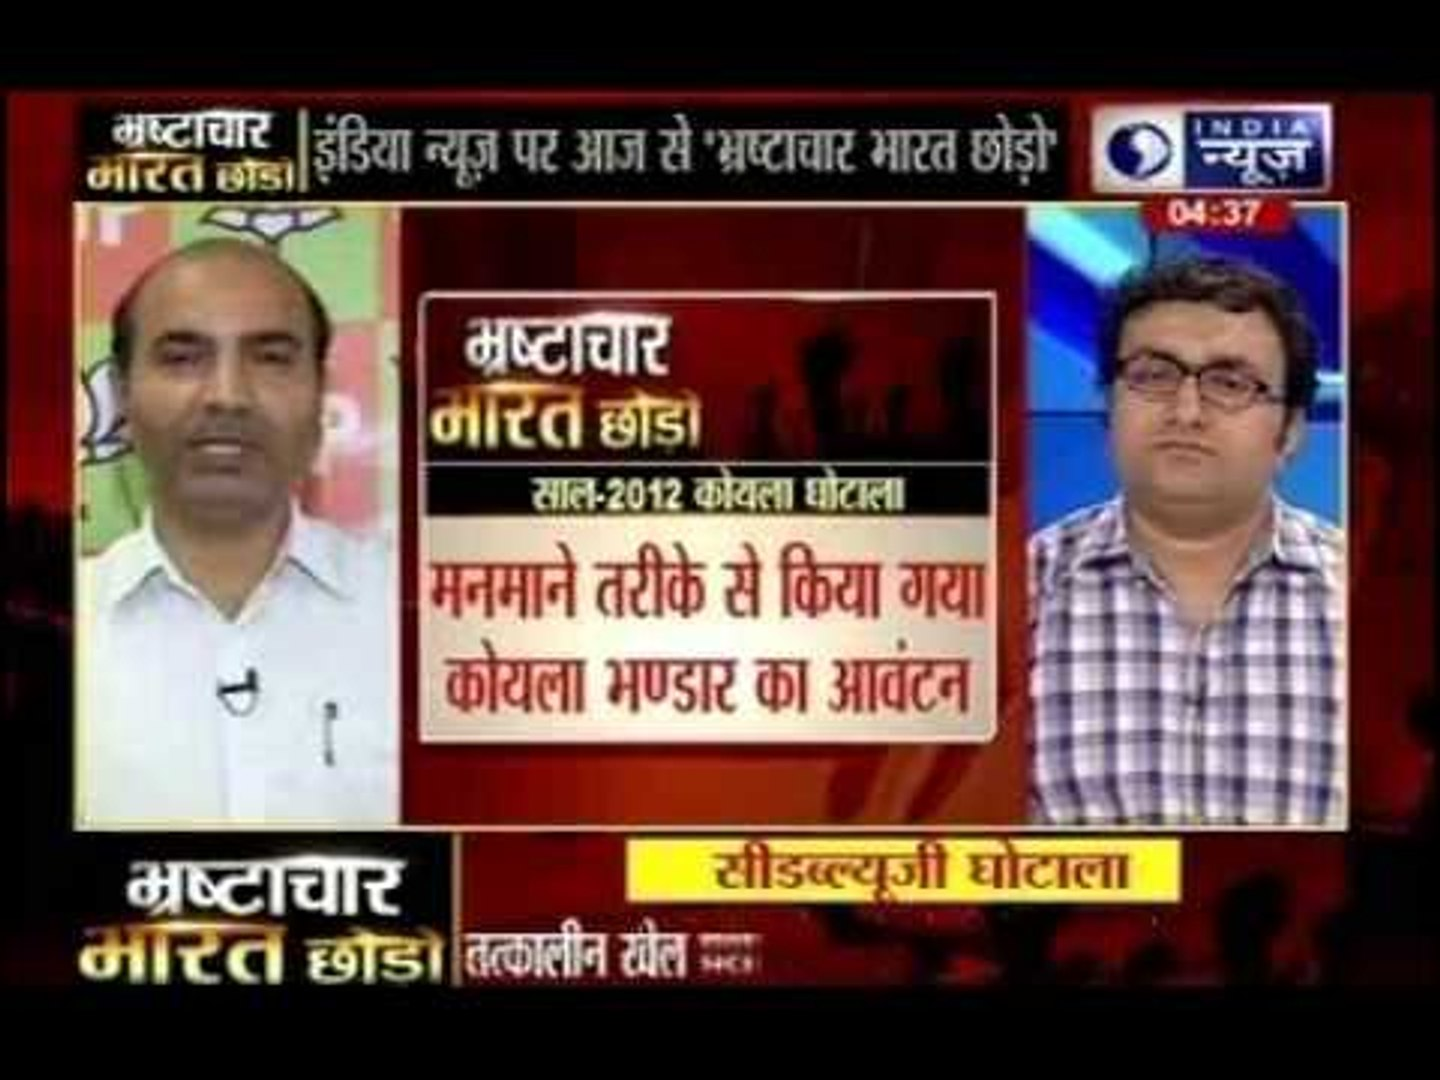 India News exclusive debate on Corruption in India